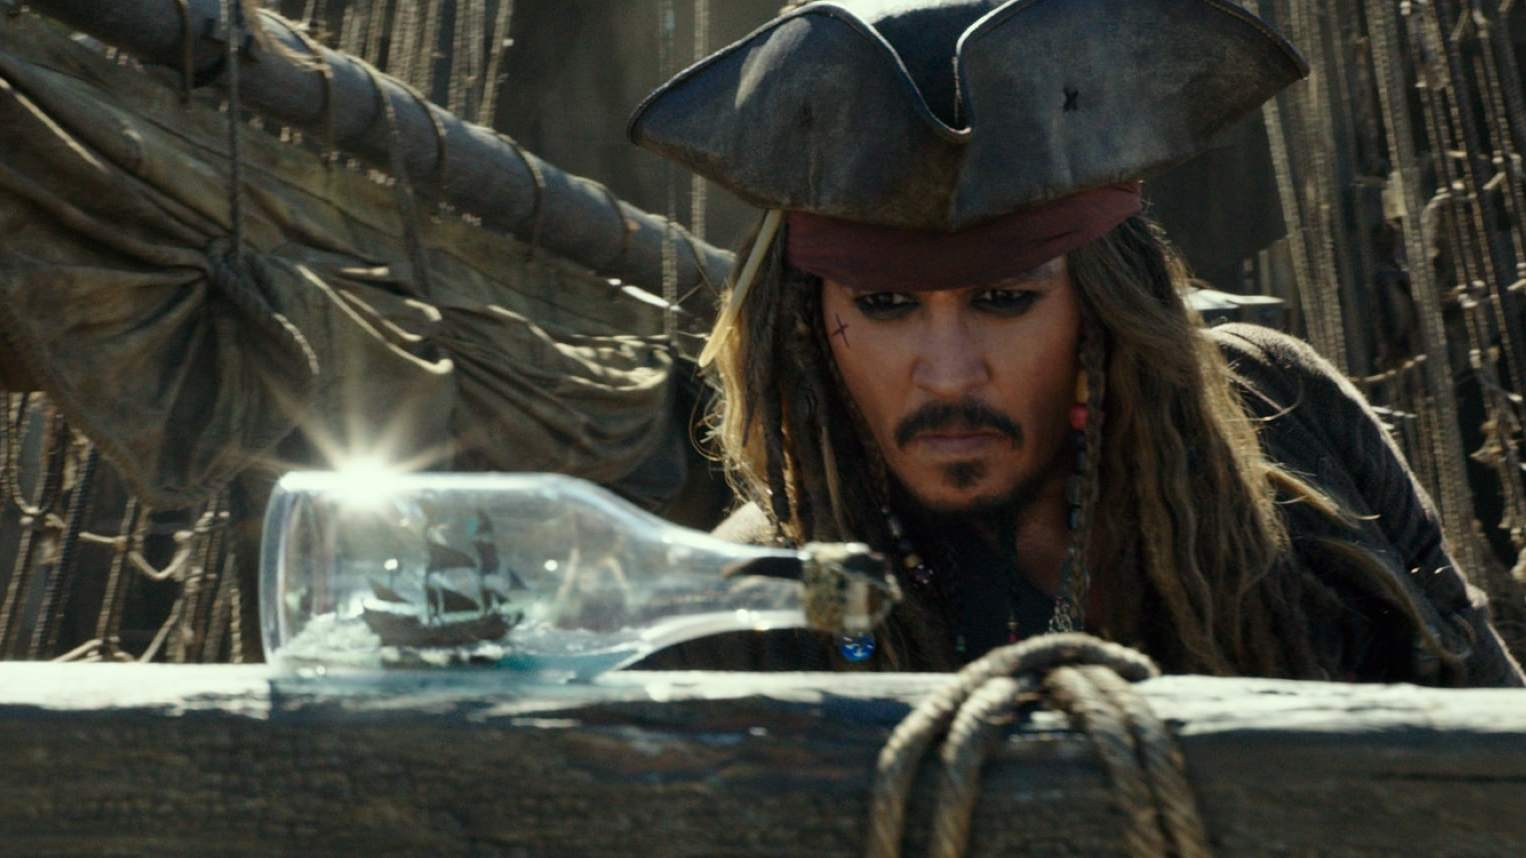 Captain Jack Sparrow, played by Johnny Depp, looking at a ship in a bottle in the movie Pirates of the Caribbean: Dead Men Tell No Tales